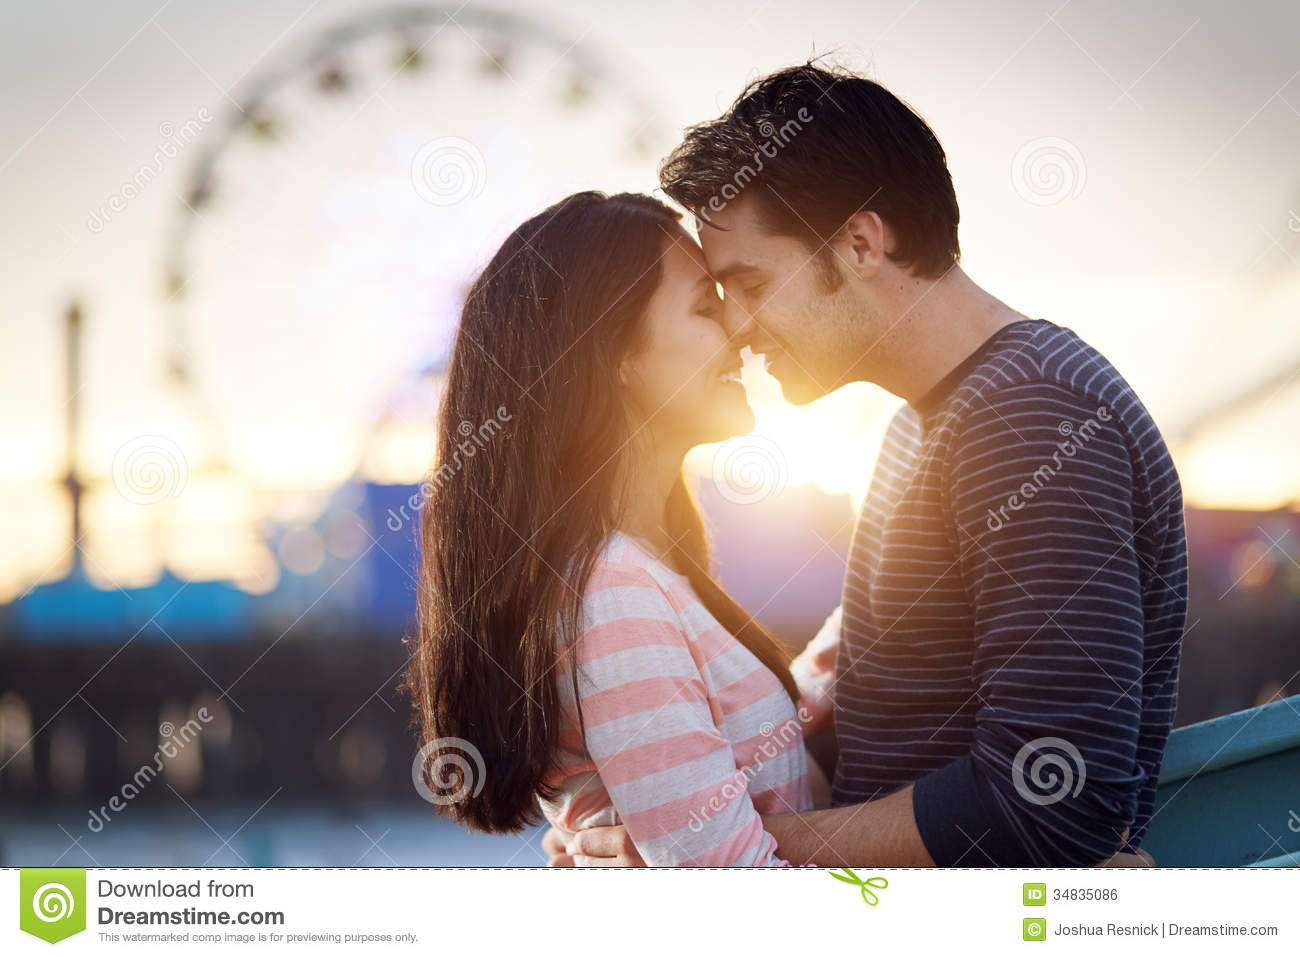 Free download images of romantic couples